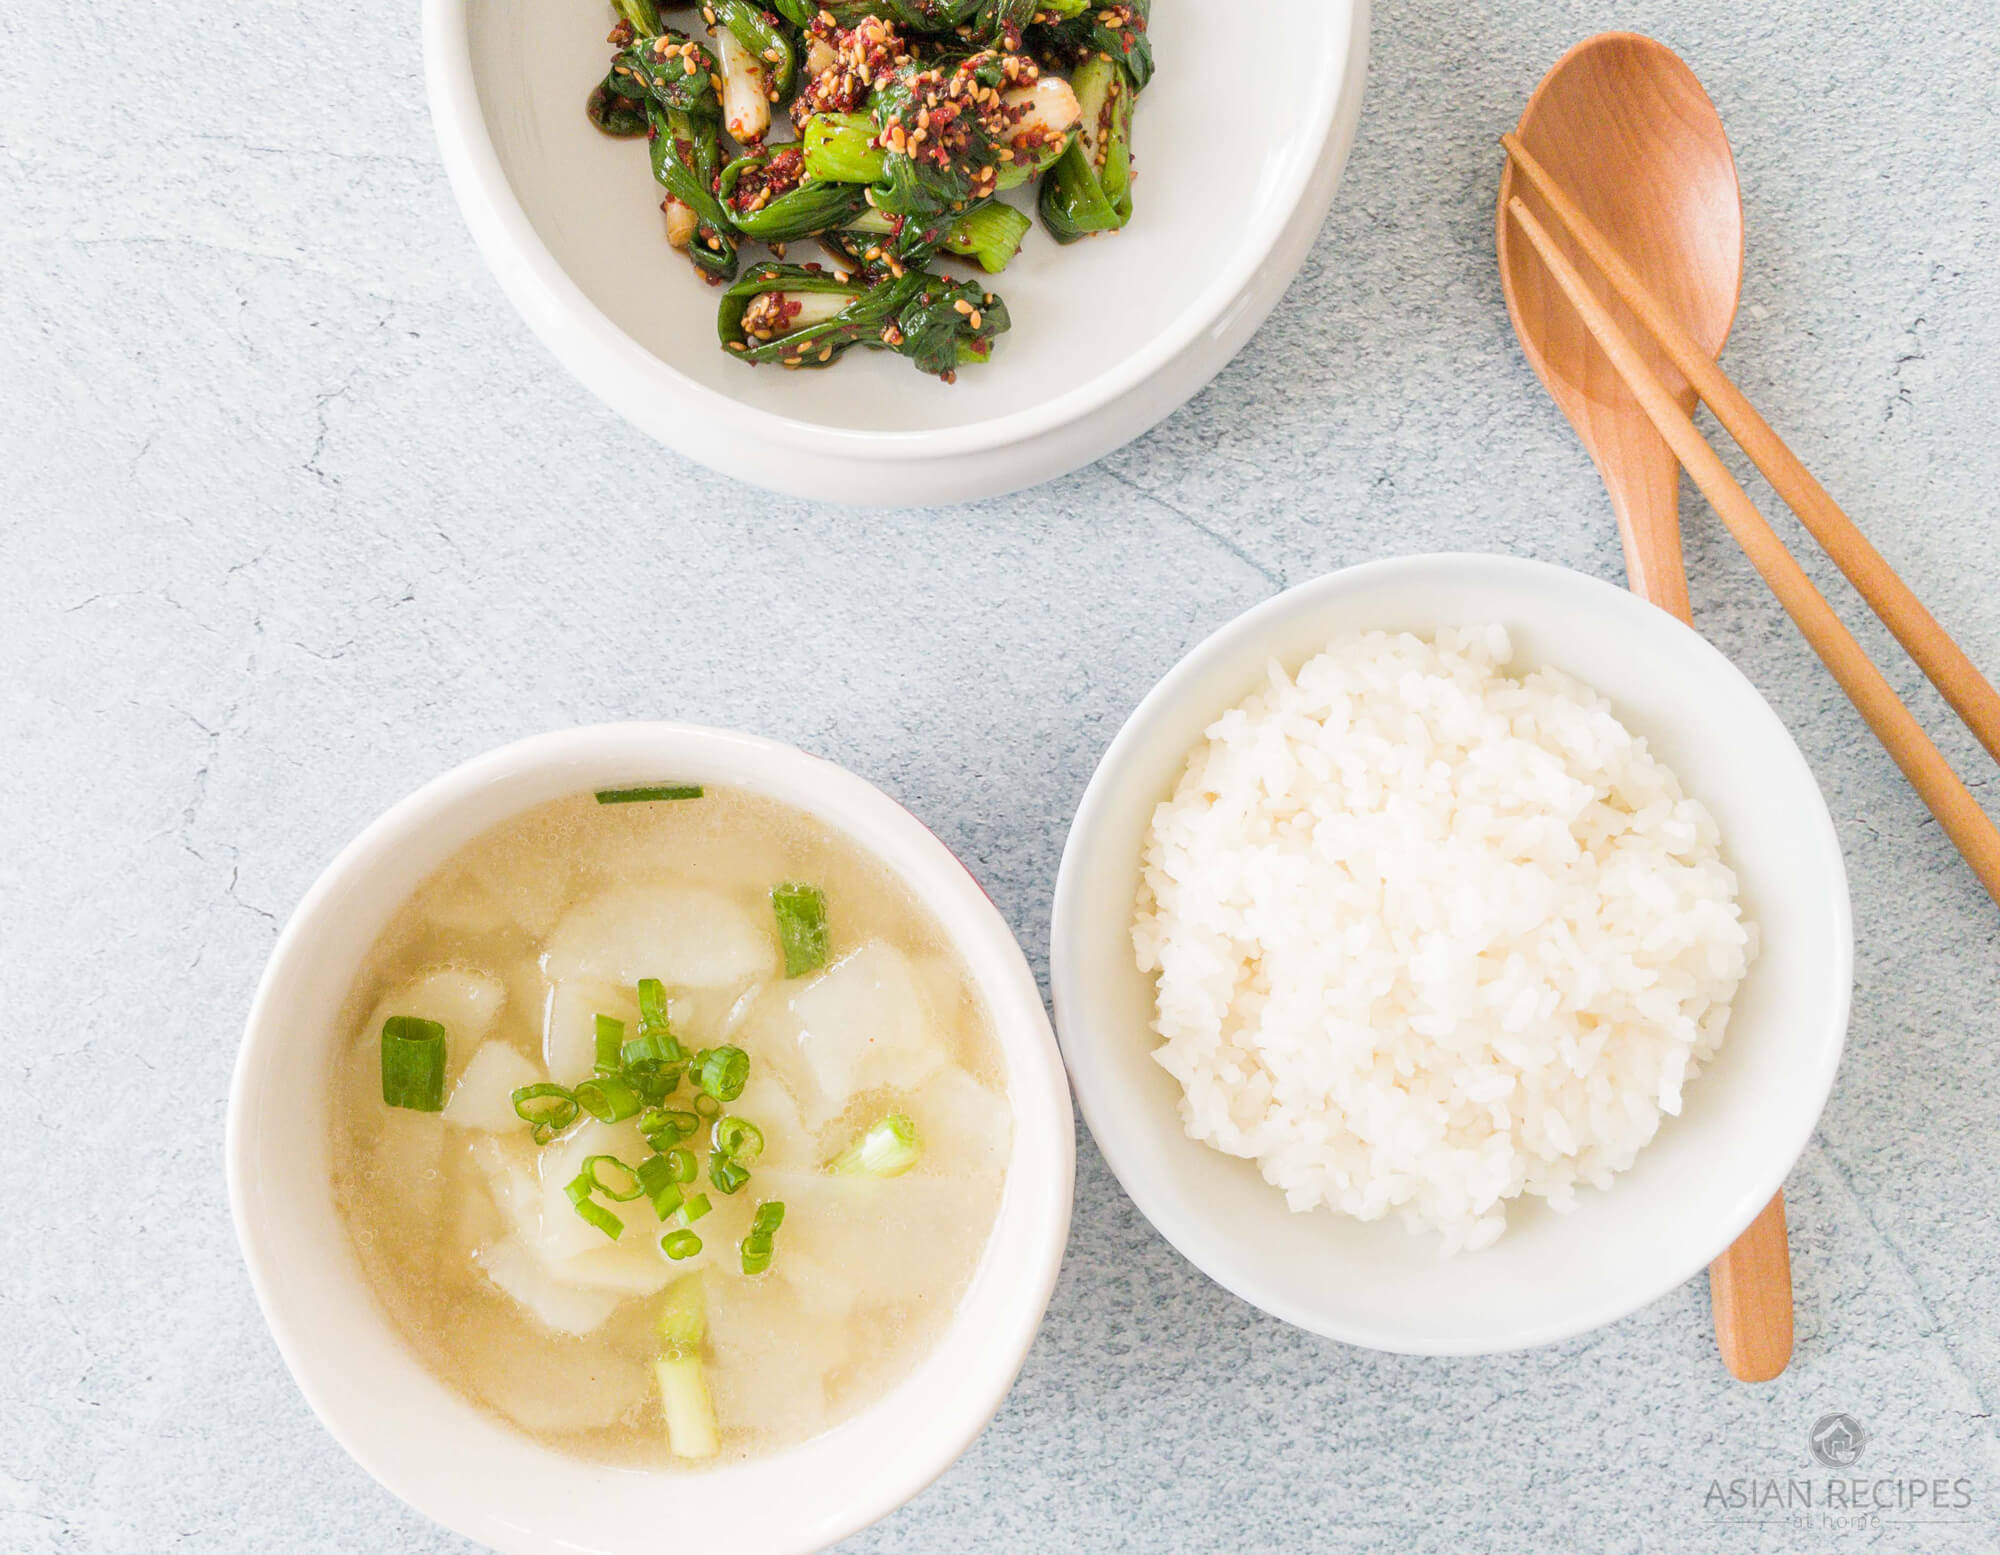 This is a super easy potato soup that is made with simple Asian-style seasonings to create a clear broth. Served with green onion side dish and steamed rice.